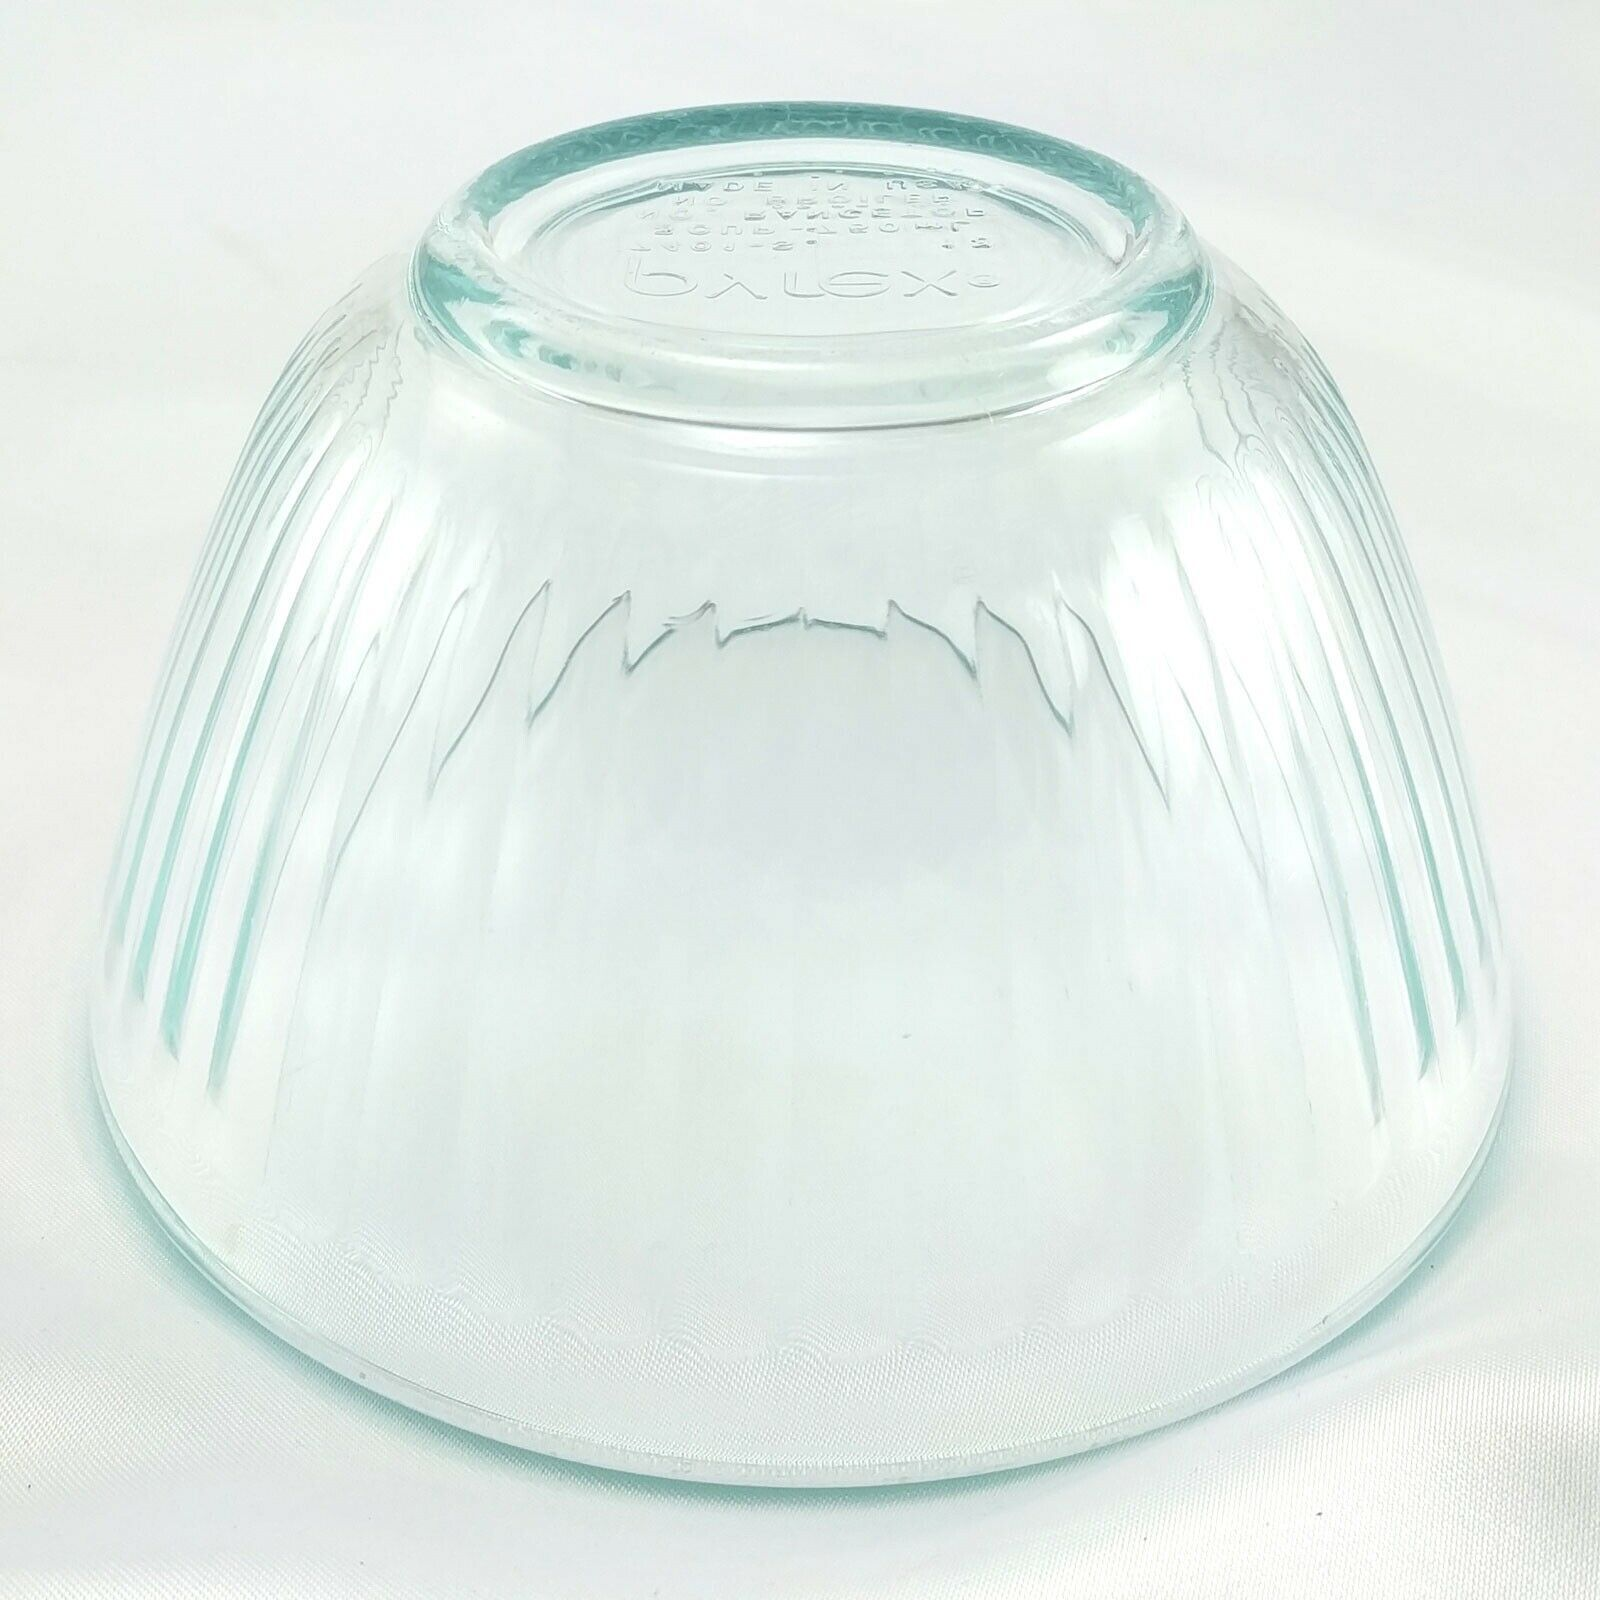 Pyrex 7401-S Ribbed Side Vintage Blue Glass Serving Bowl 3 Cup ~ CHIPPED RIM image 3